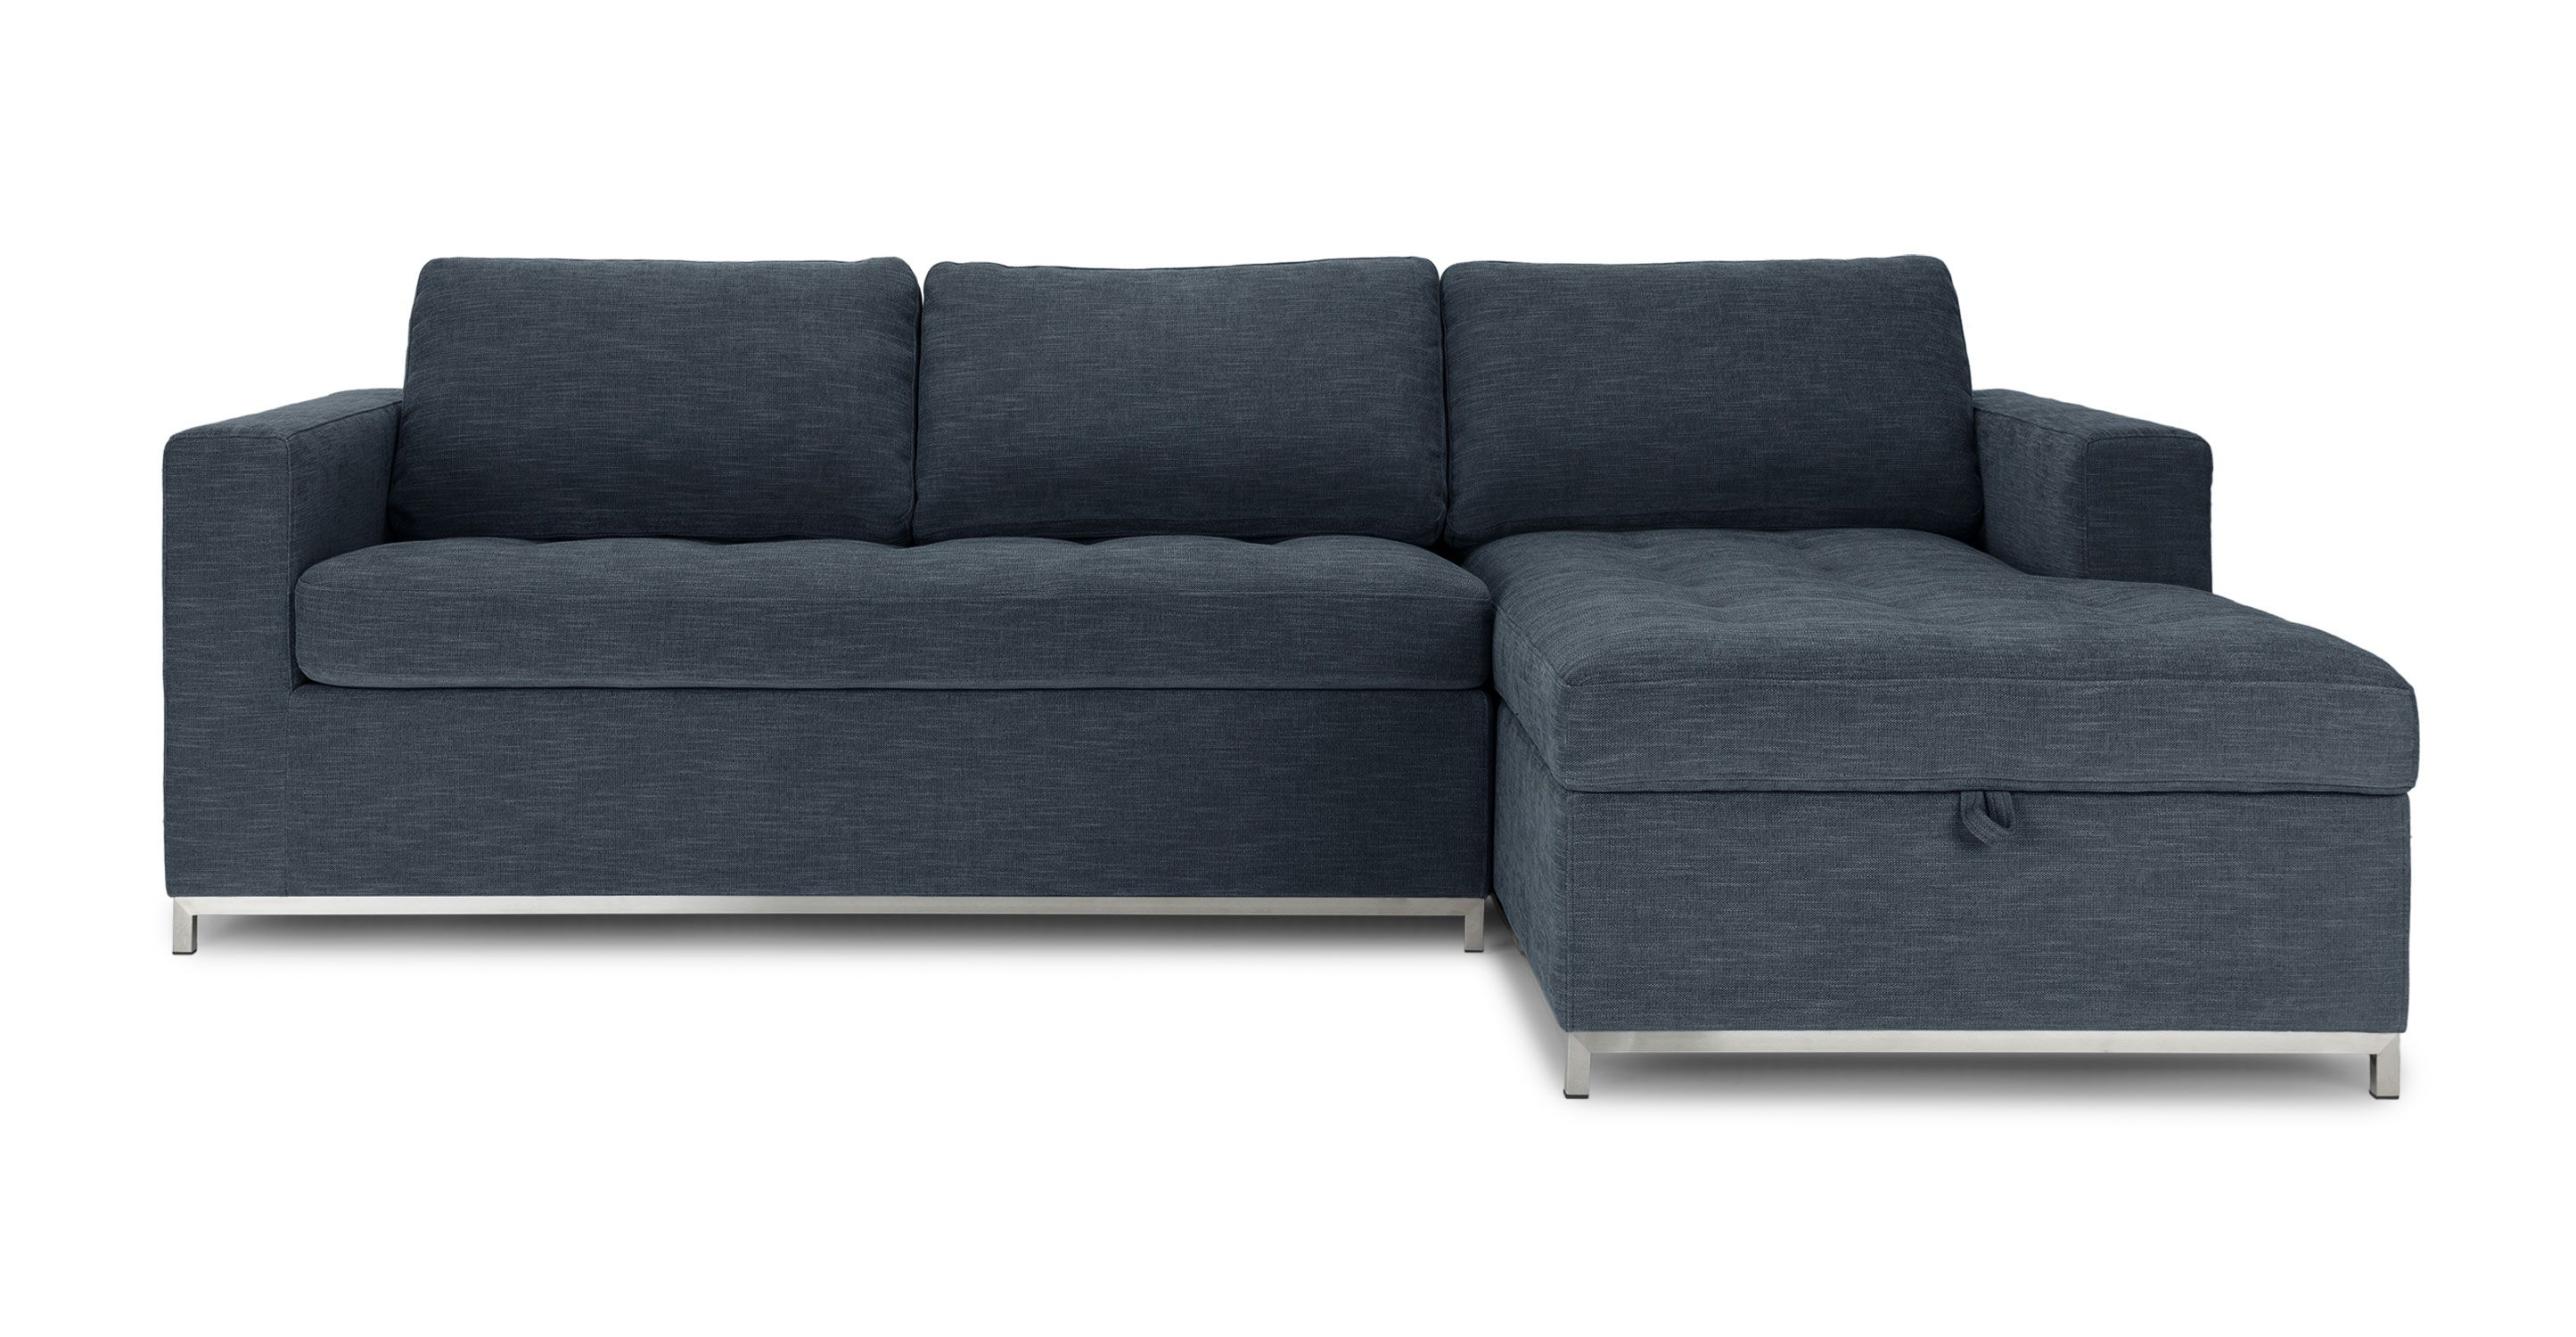 and gray decor concepts dimensions of home sofa sectionals charcoal size black leather full sectional blue for large in contemporary couch white sofas sale